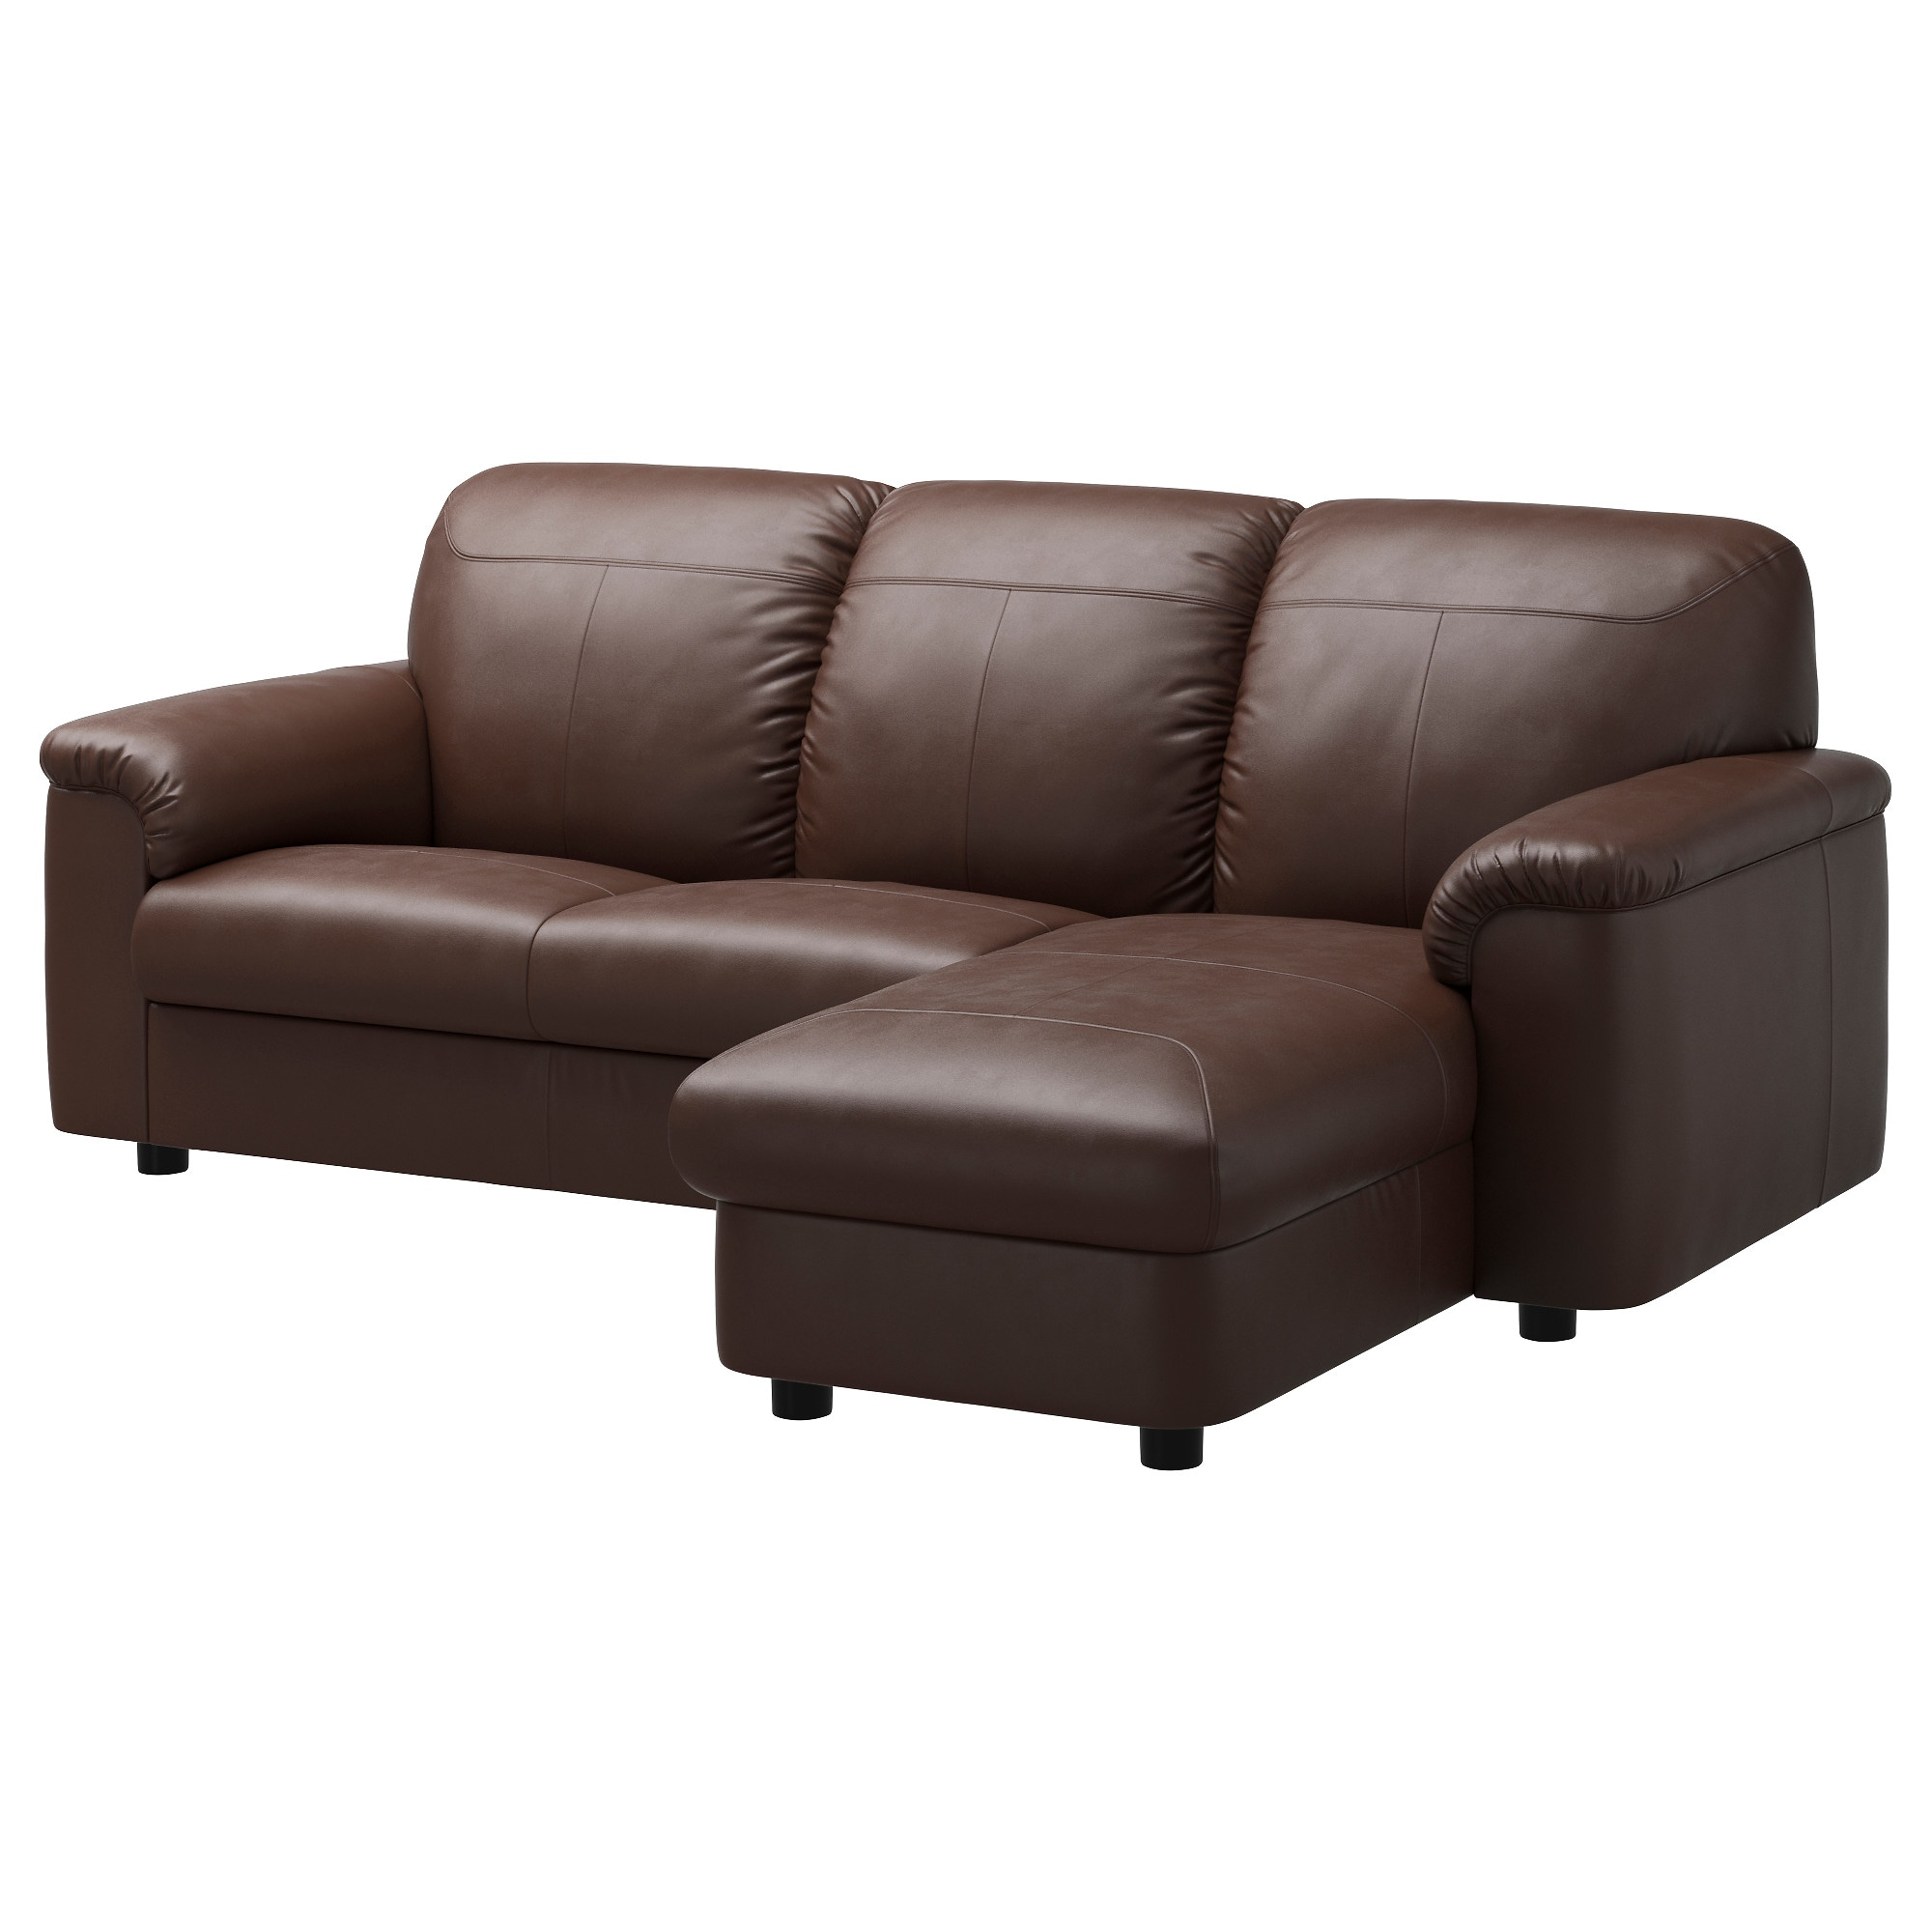 leather sofa bed ikea. Leather Sofa Bed Ikea K